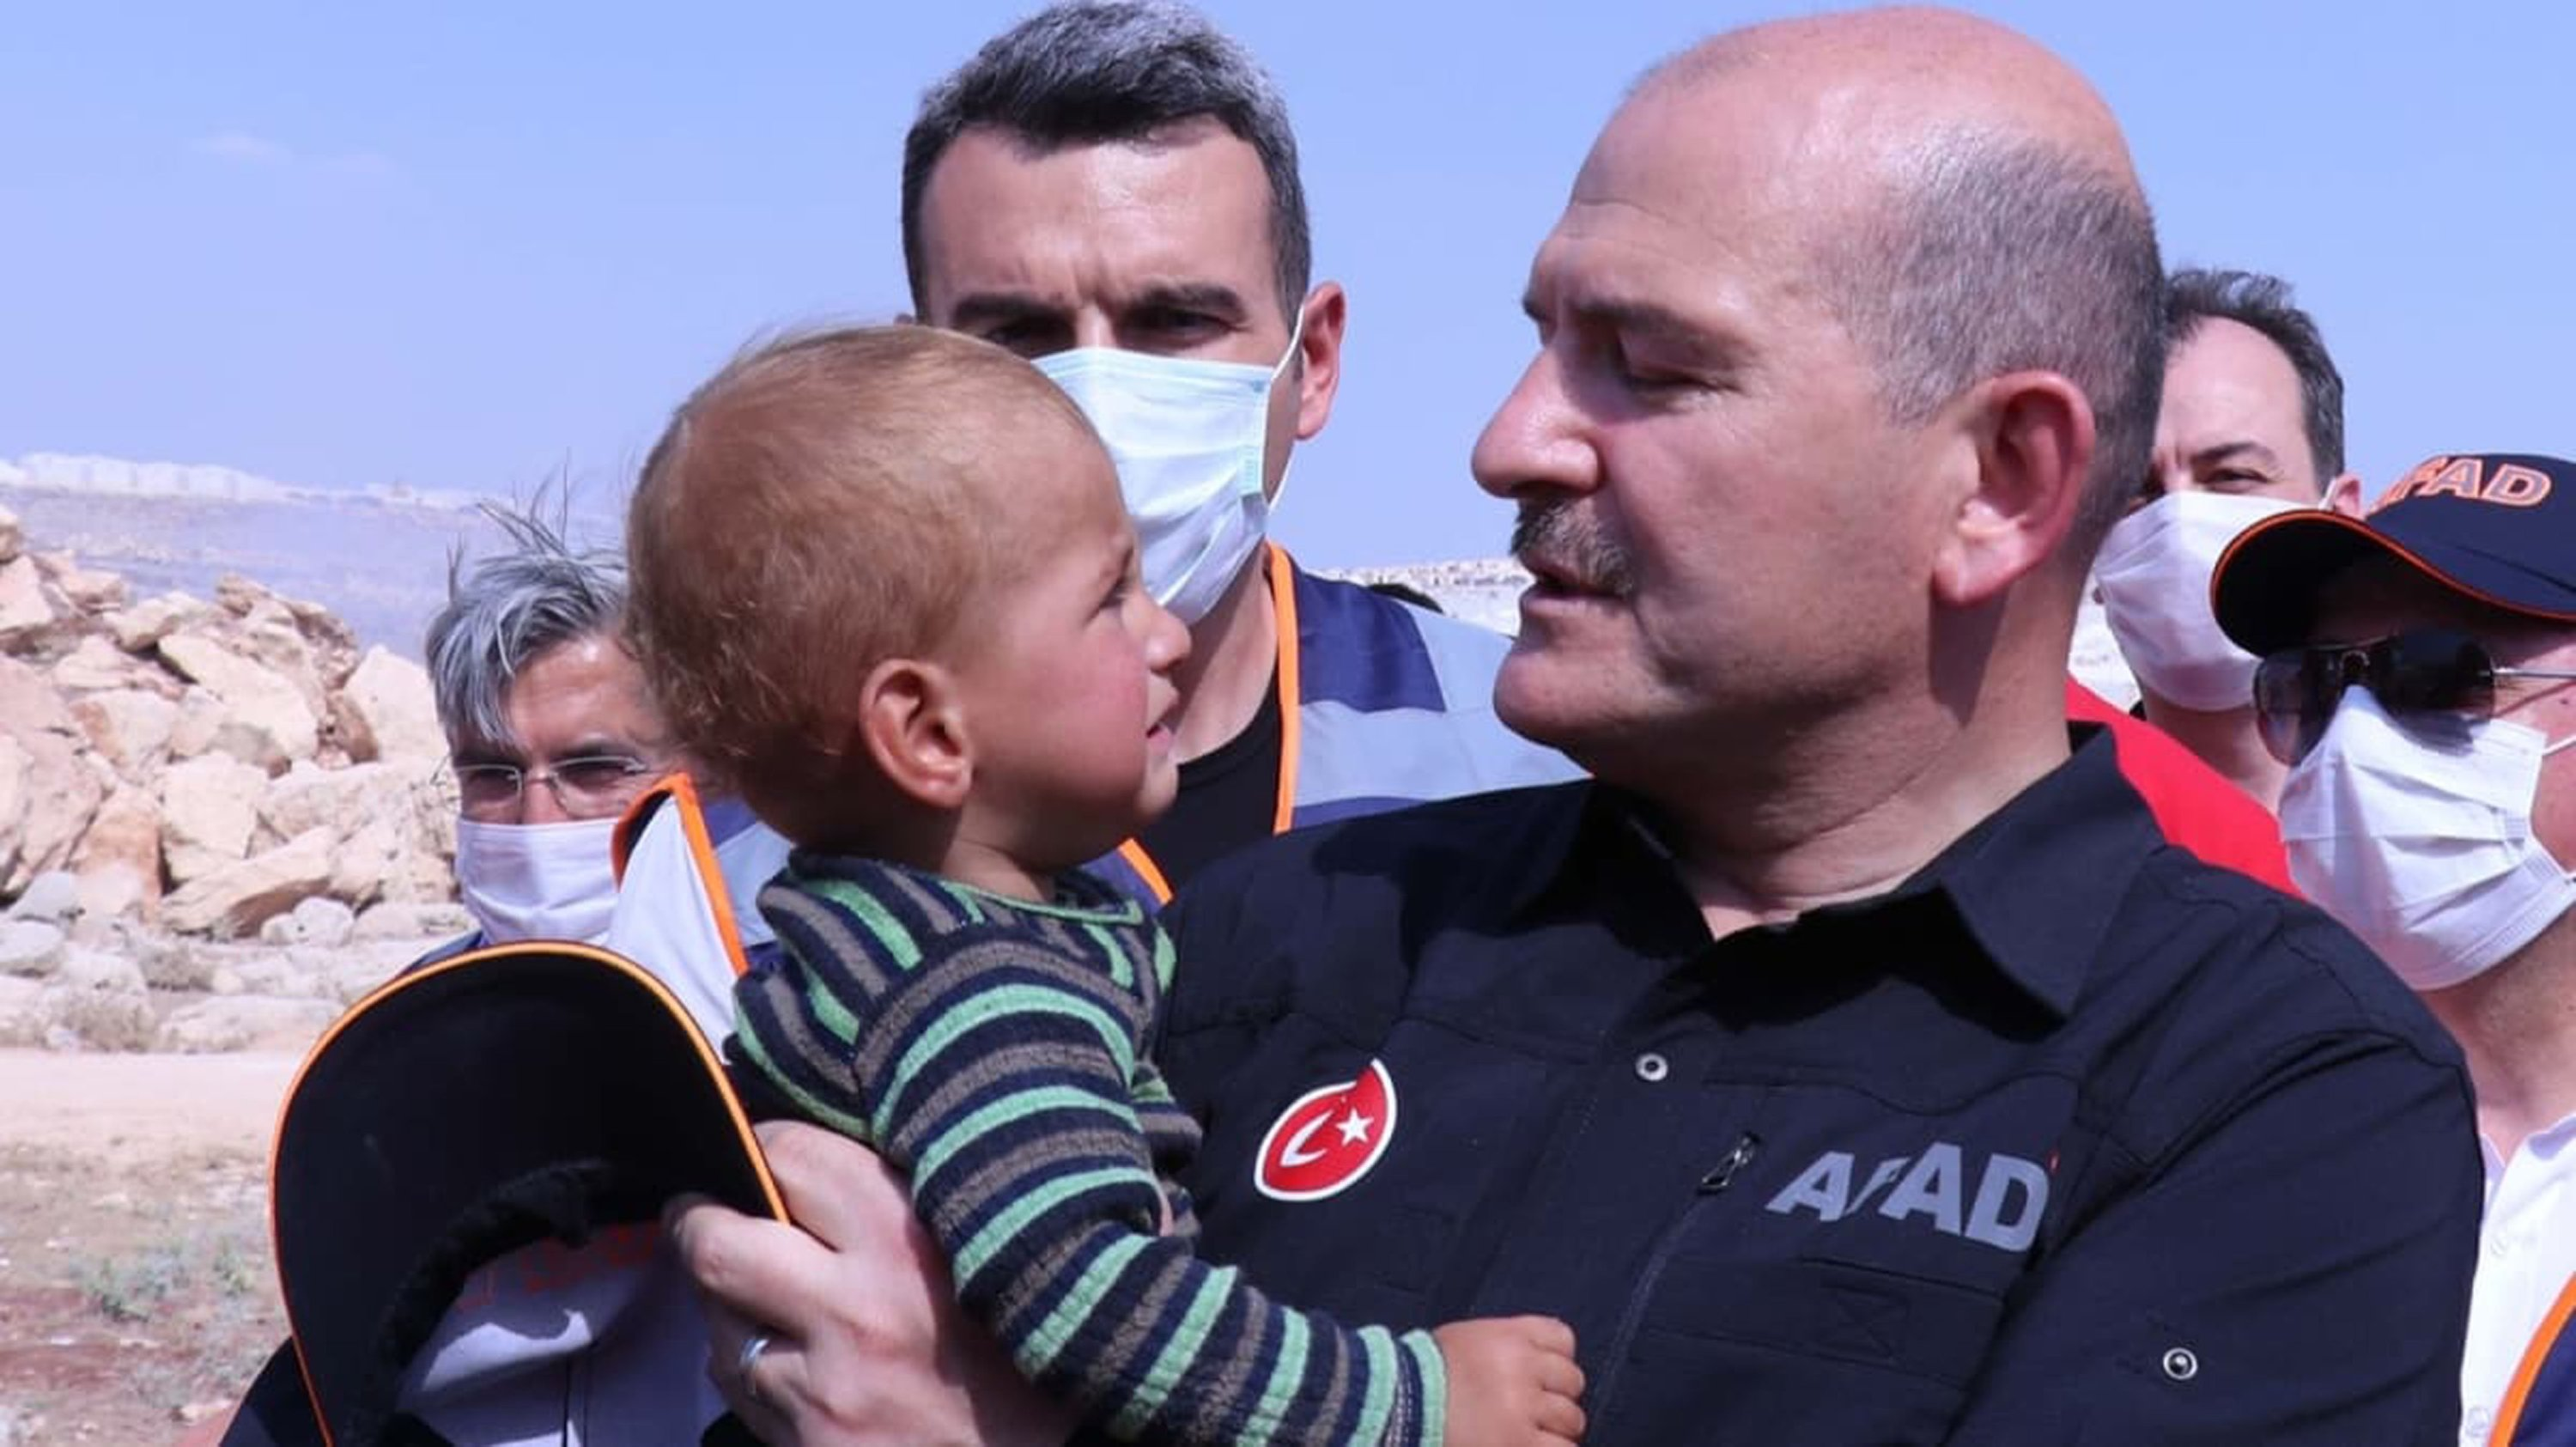 Interior Minister Süleyman Soylu hugs a displaced Syrian child during his one-day trip to Idlib, June 7, 2020.